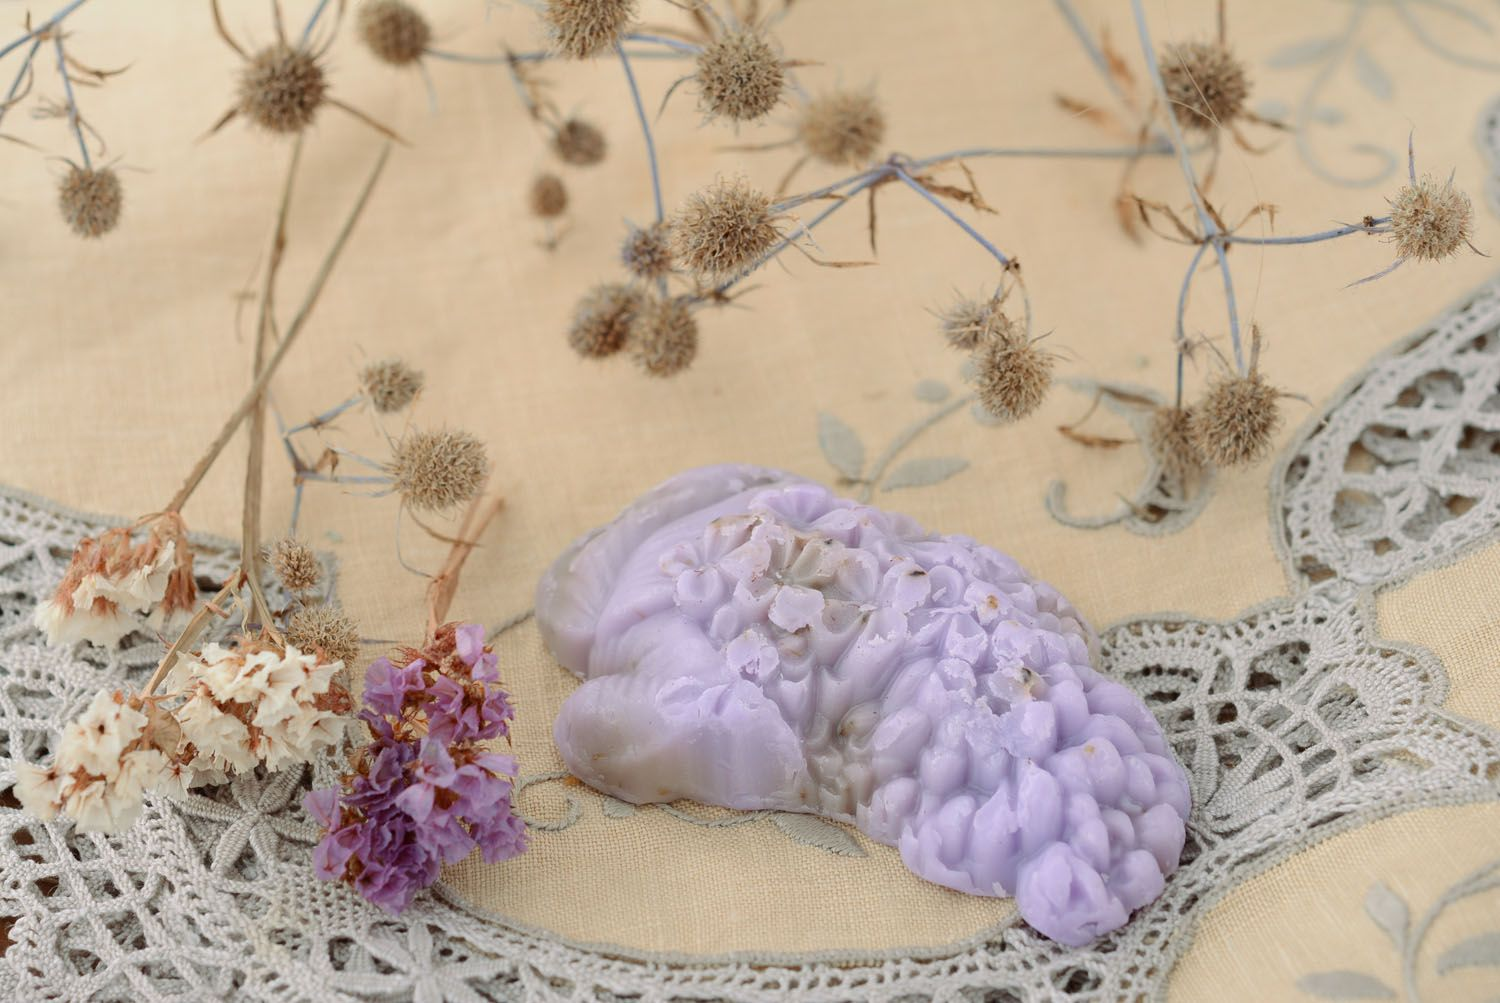 Homemade soap with lilac flowers photo 4